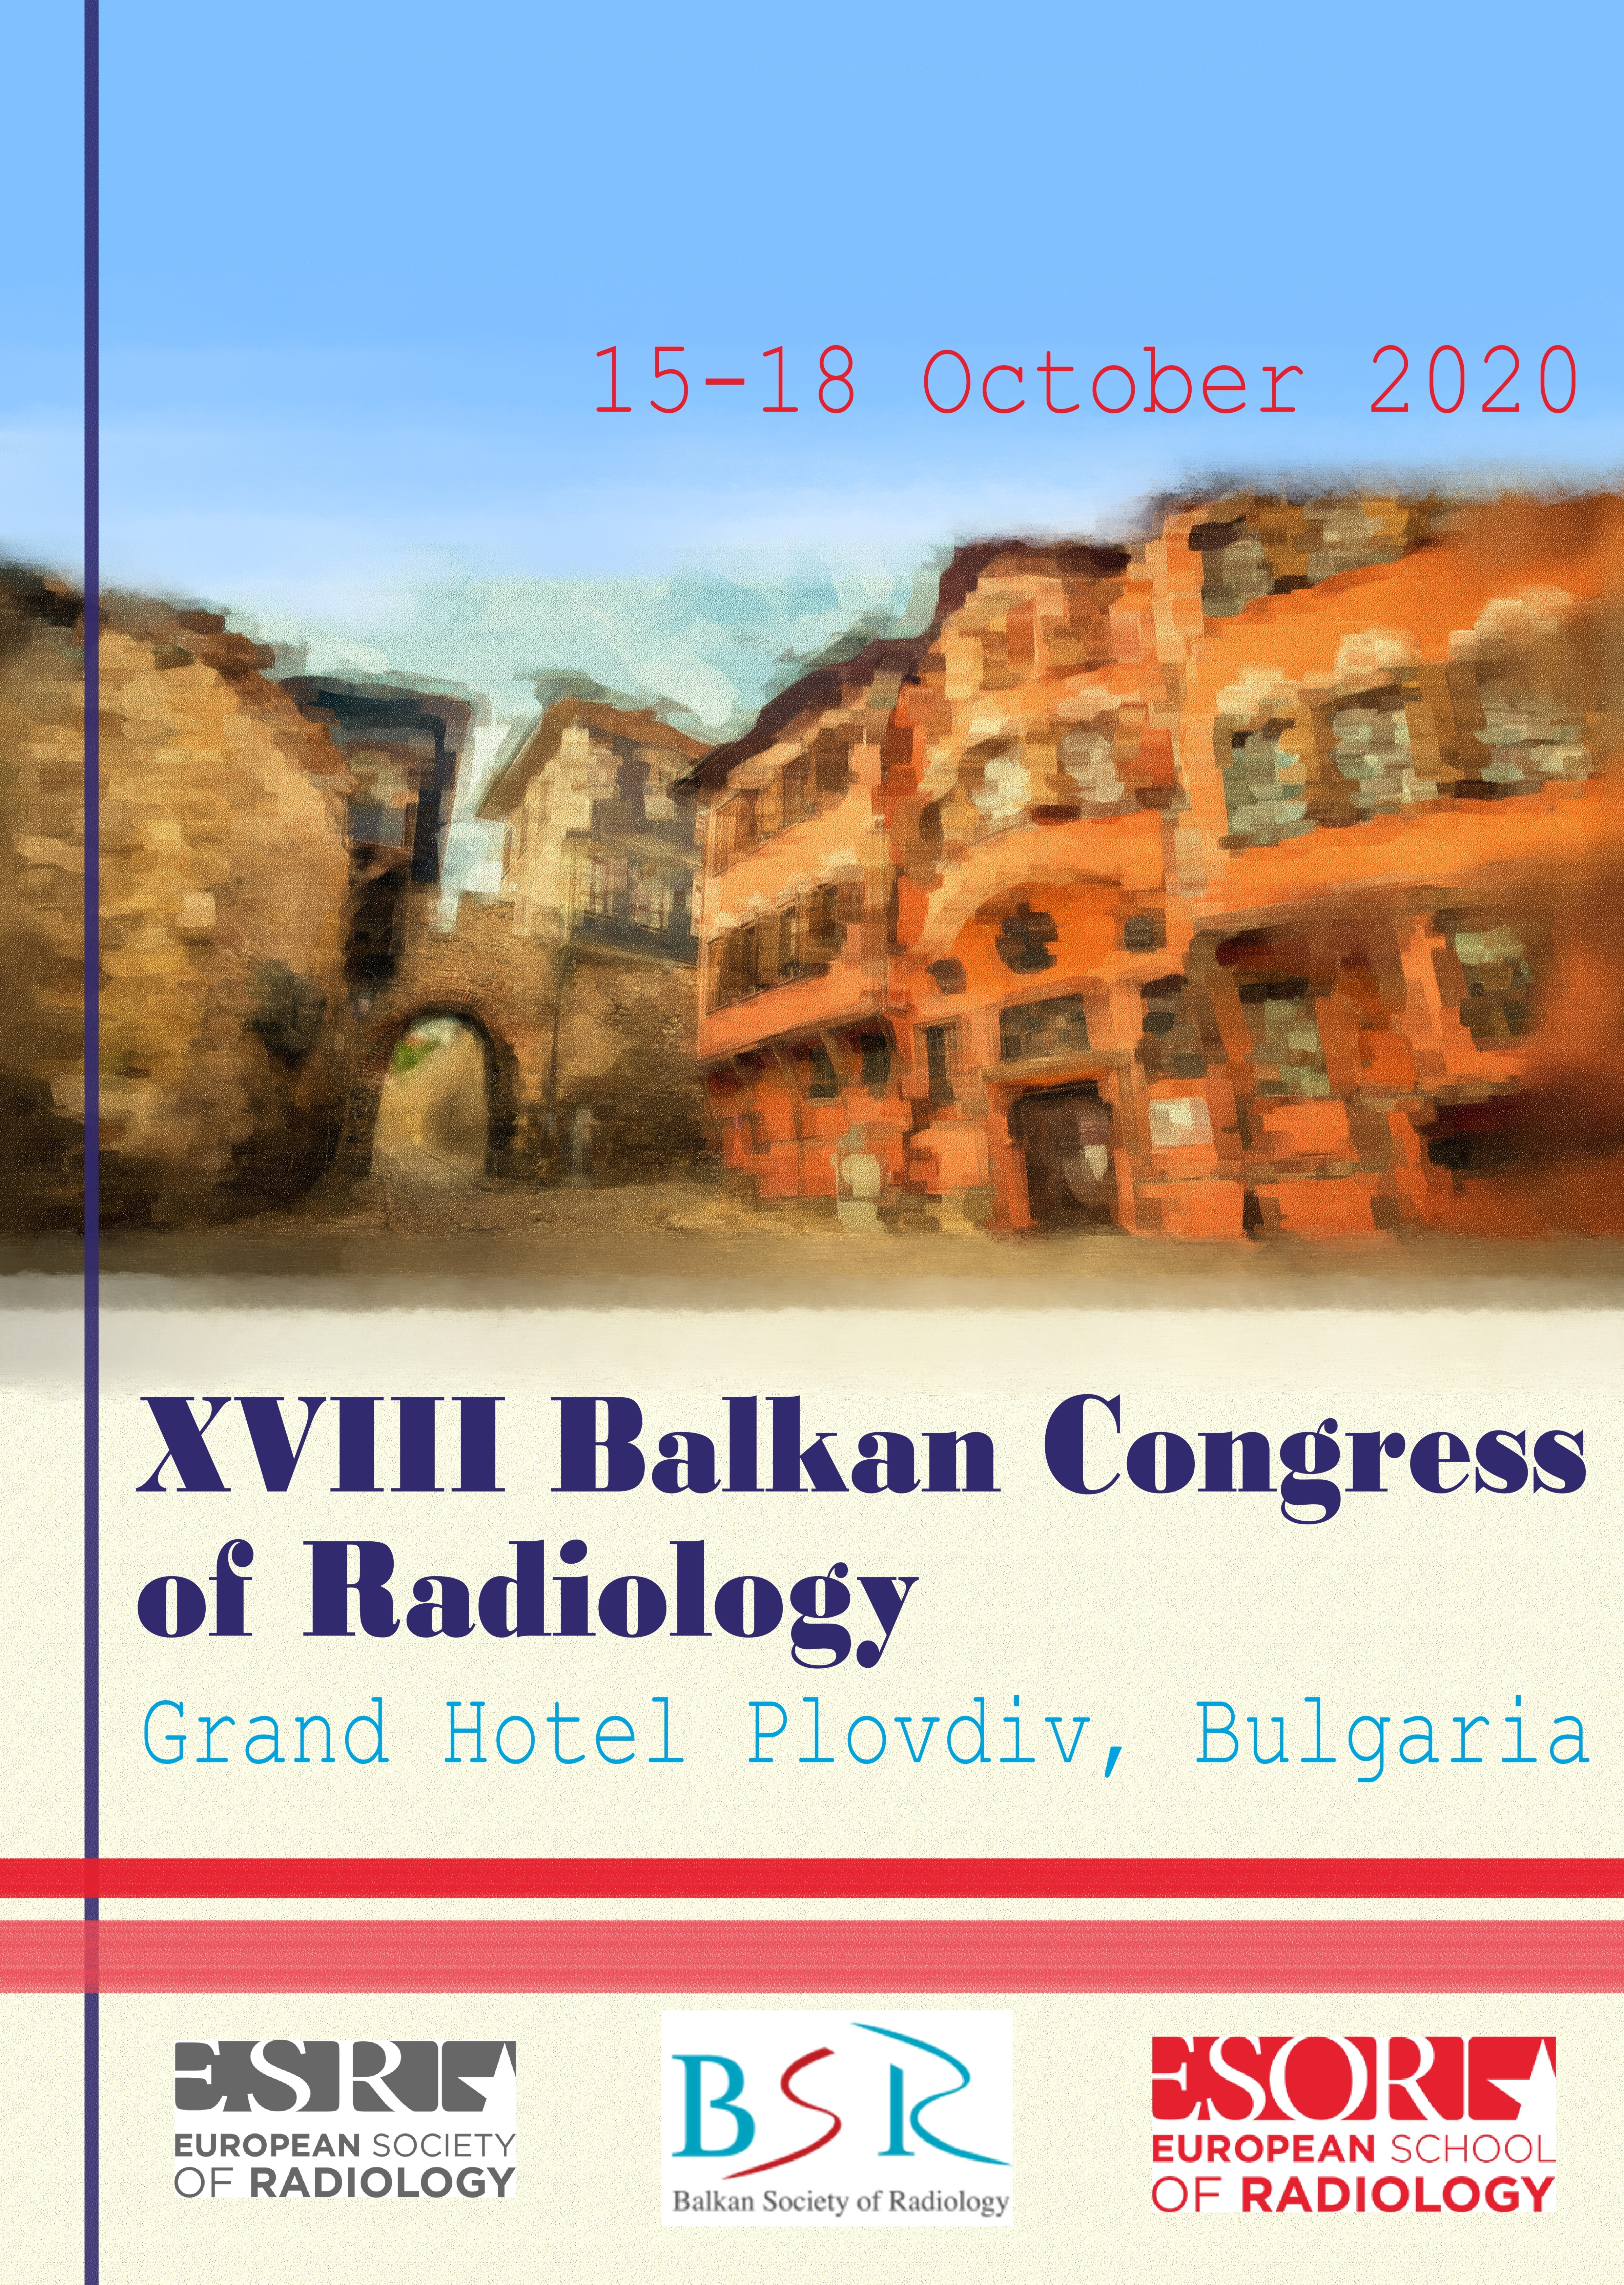 XVIII Balkan Congress of Radiology